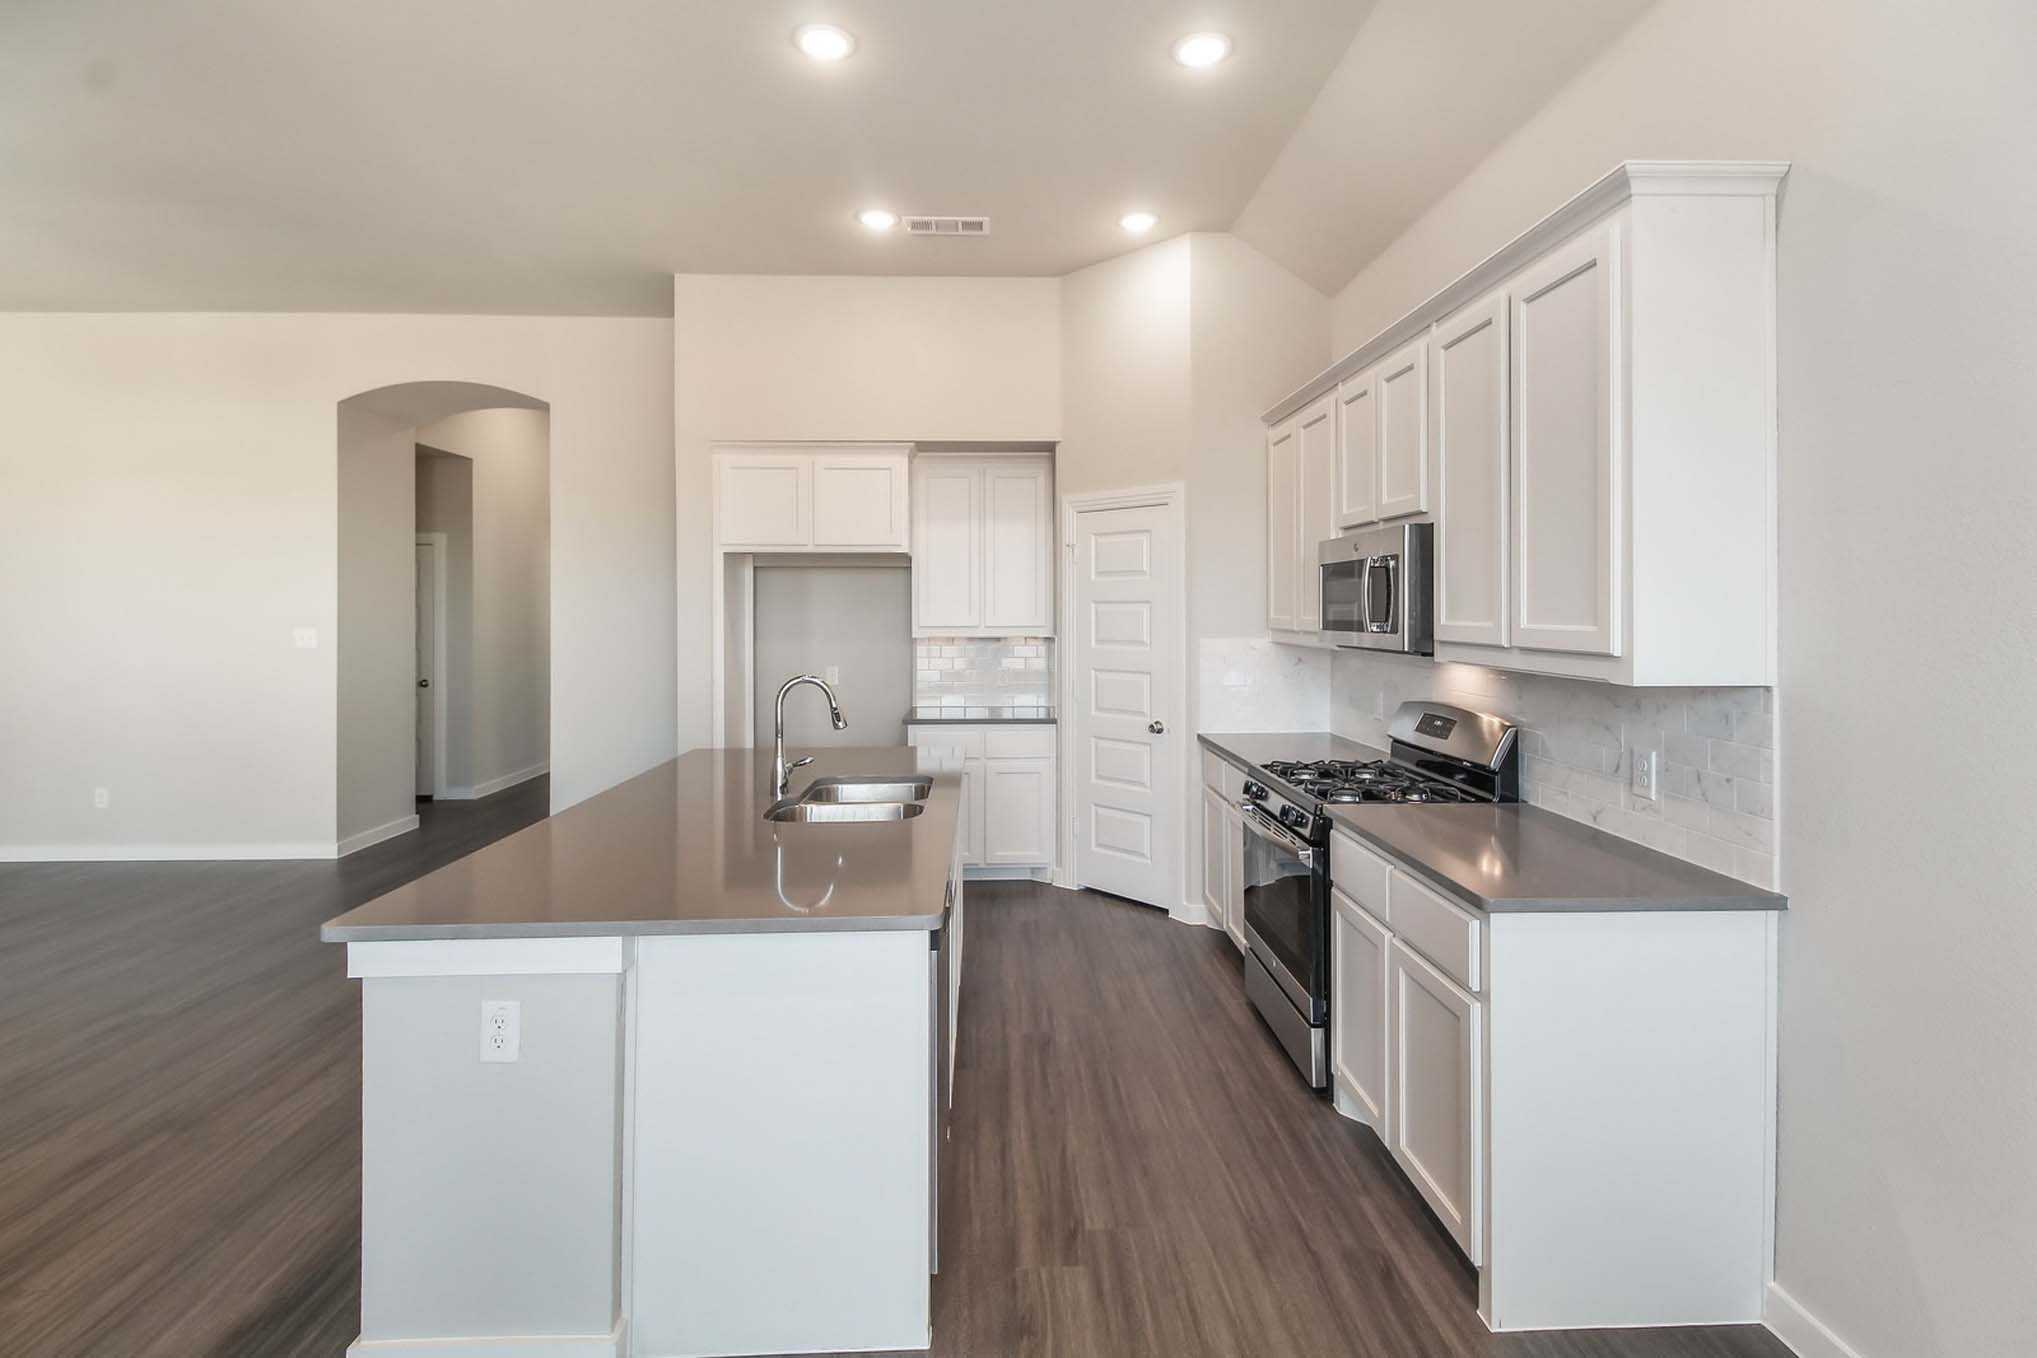 Kitchen-in-Plan Camden-at-Crosswinds: 50ft. lots-in-Kyle